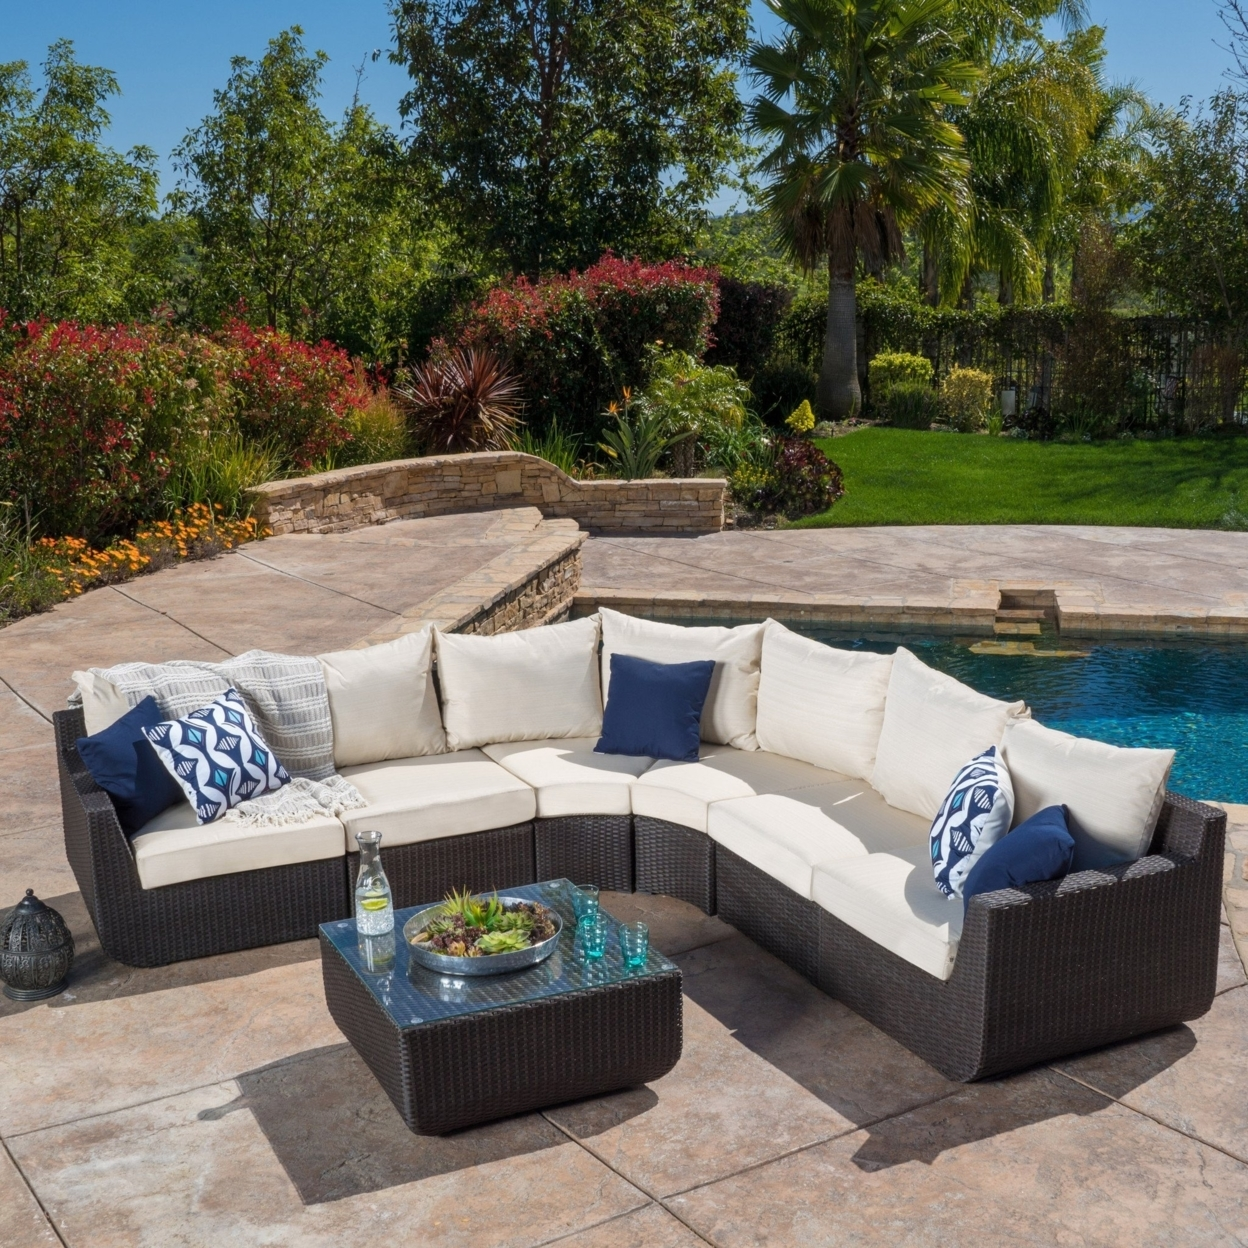 Prado Outdoor 7-piece Sectional Sofa Set with Beige Cushions